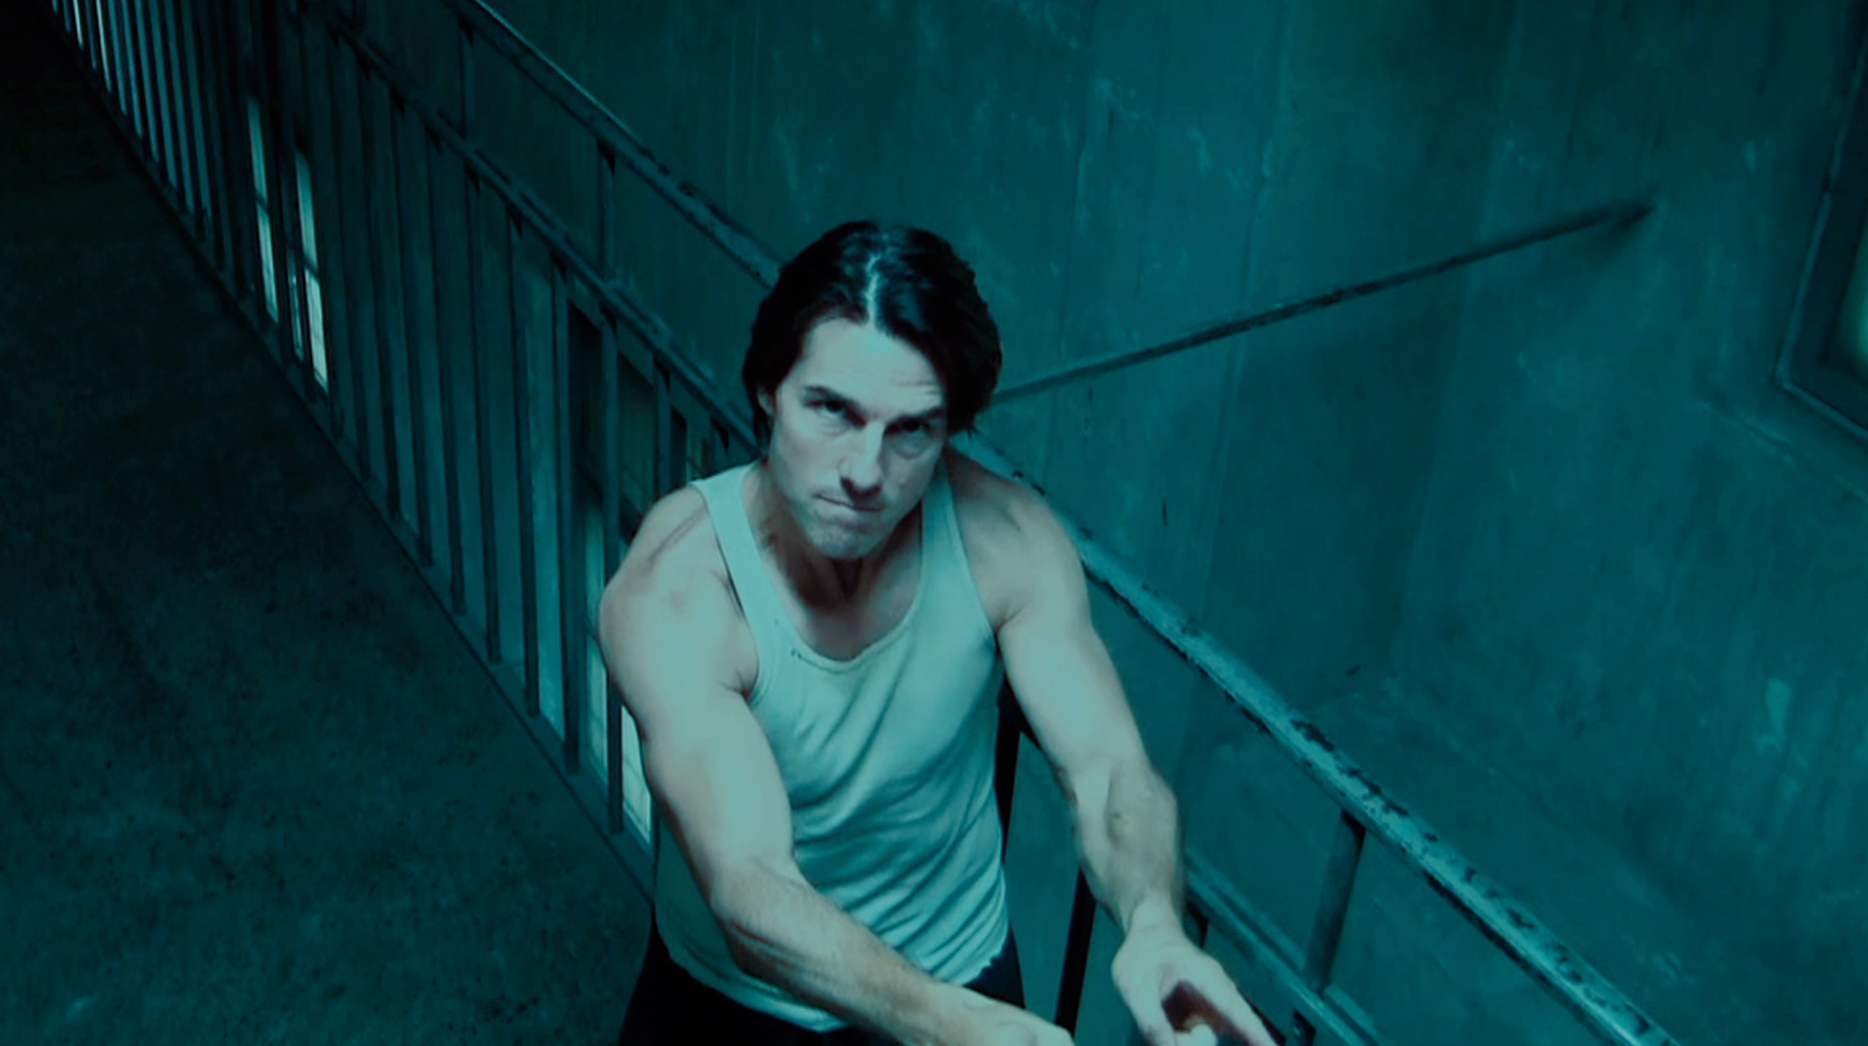 FXX - MISSION IMPOSSIBLE: GHOST PROTOCOL (TV20)